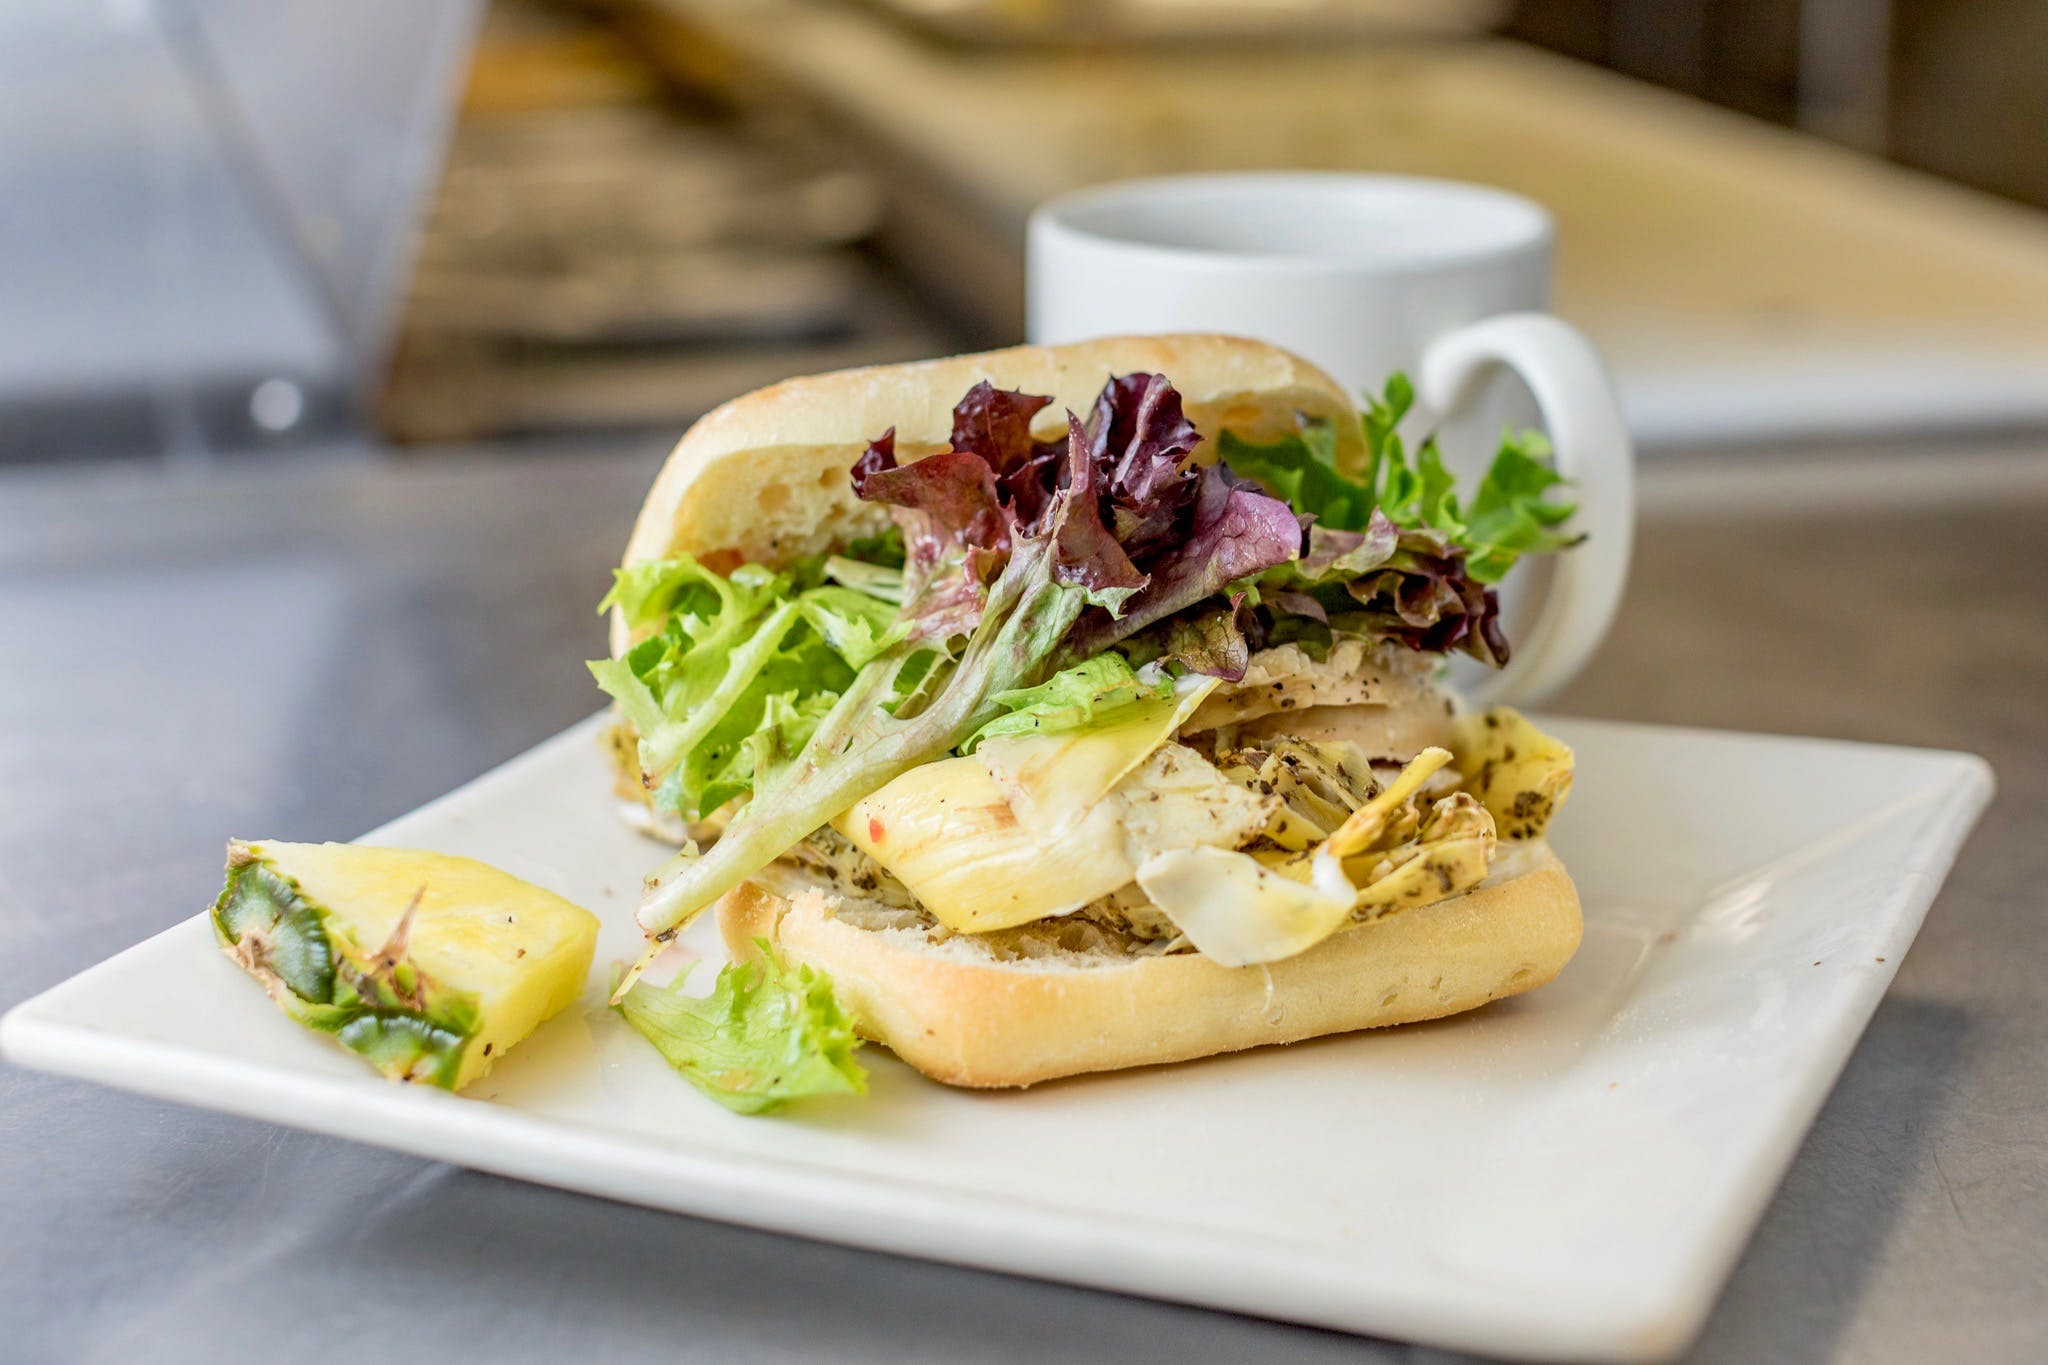 Roasted Artichoke Chicken Sandwich from The French Press in Eau Claire, WI